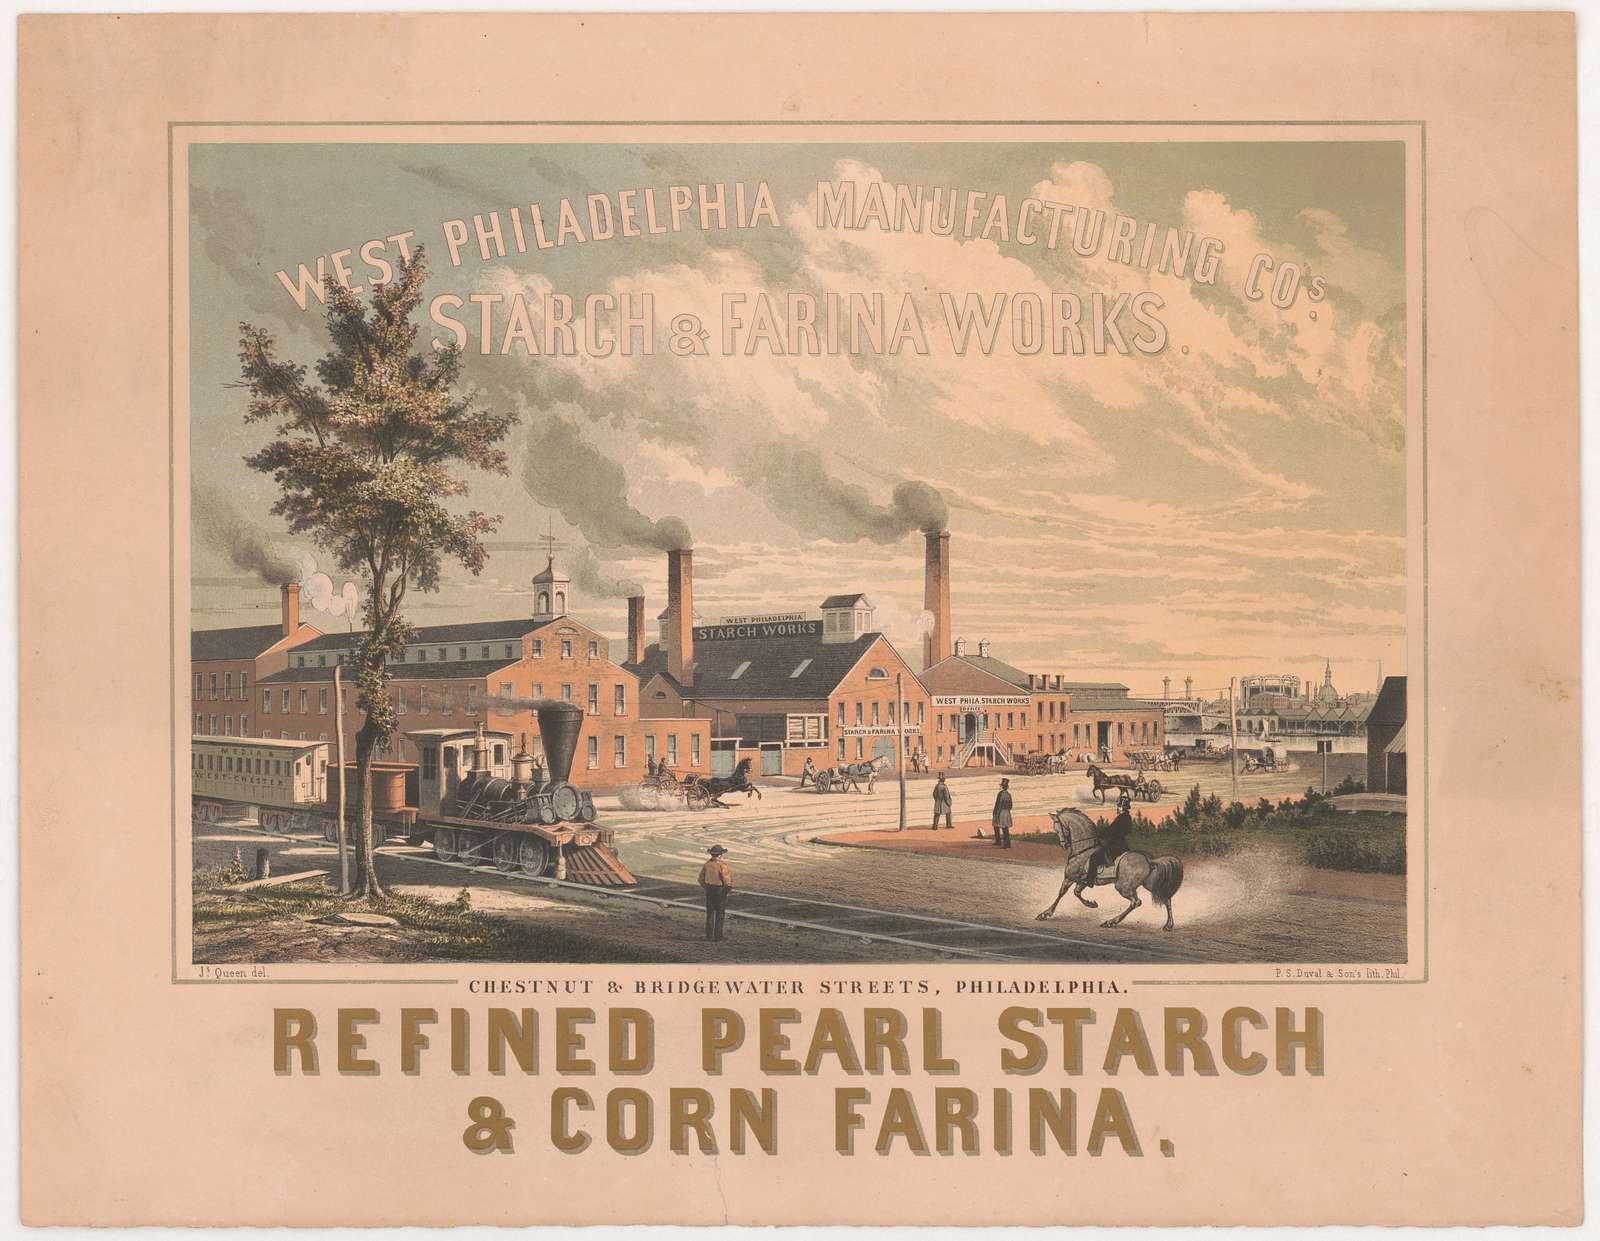 West Philadelphia Manufacturing Cos. starch & sarina works Js. Queen del. ; P.S. Duval & Son's Lith. Phila